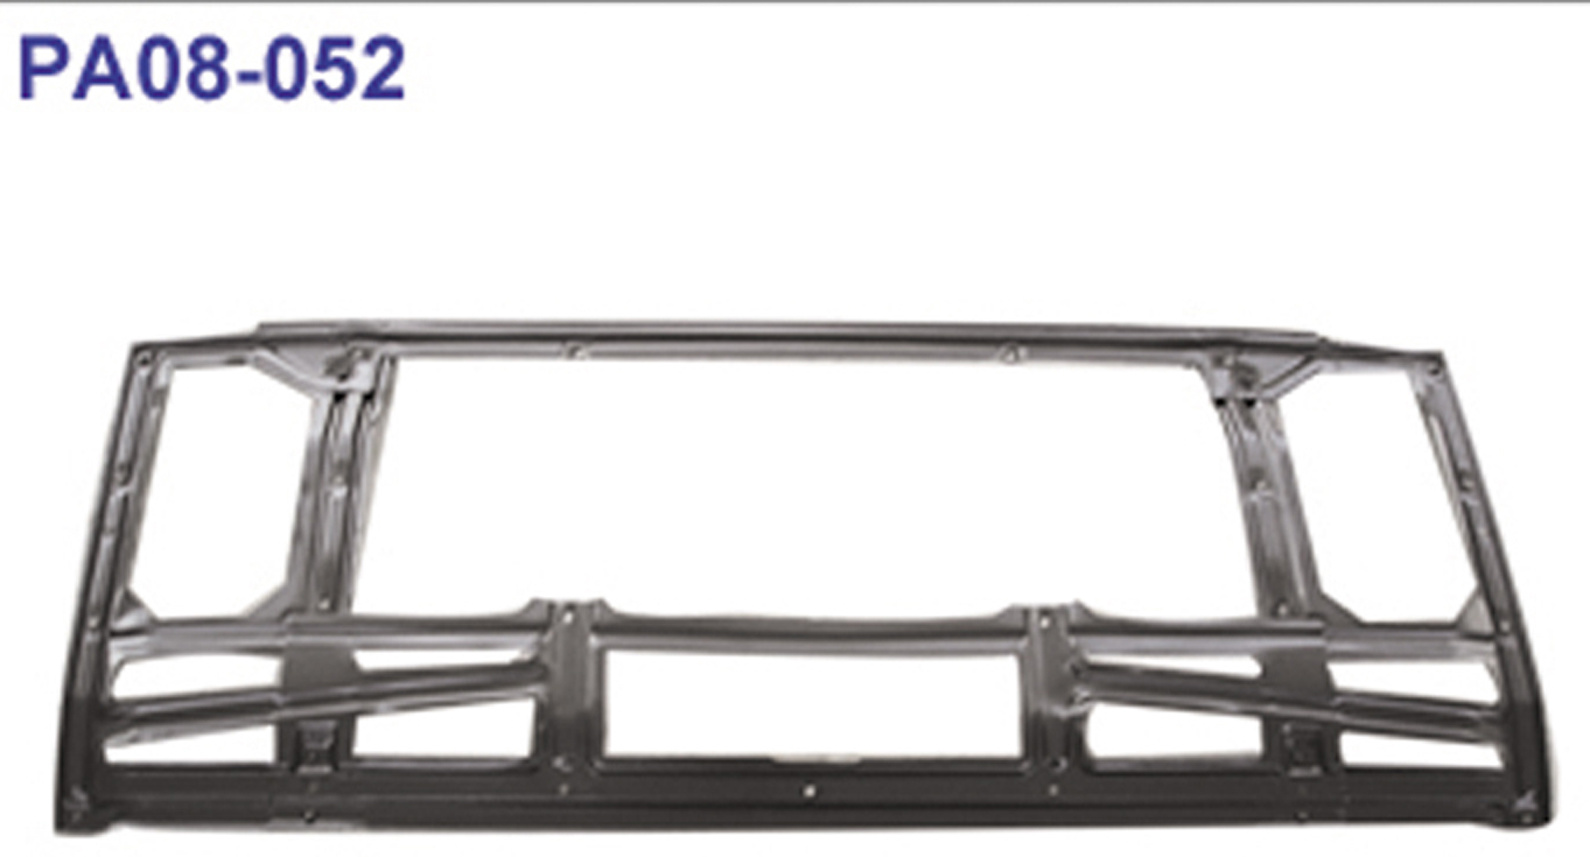 Mercedes benz front envelope body parts pa08 052 for Mercedes benz body parts